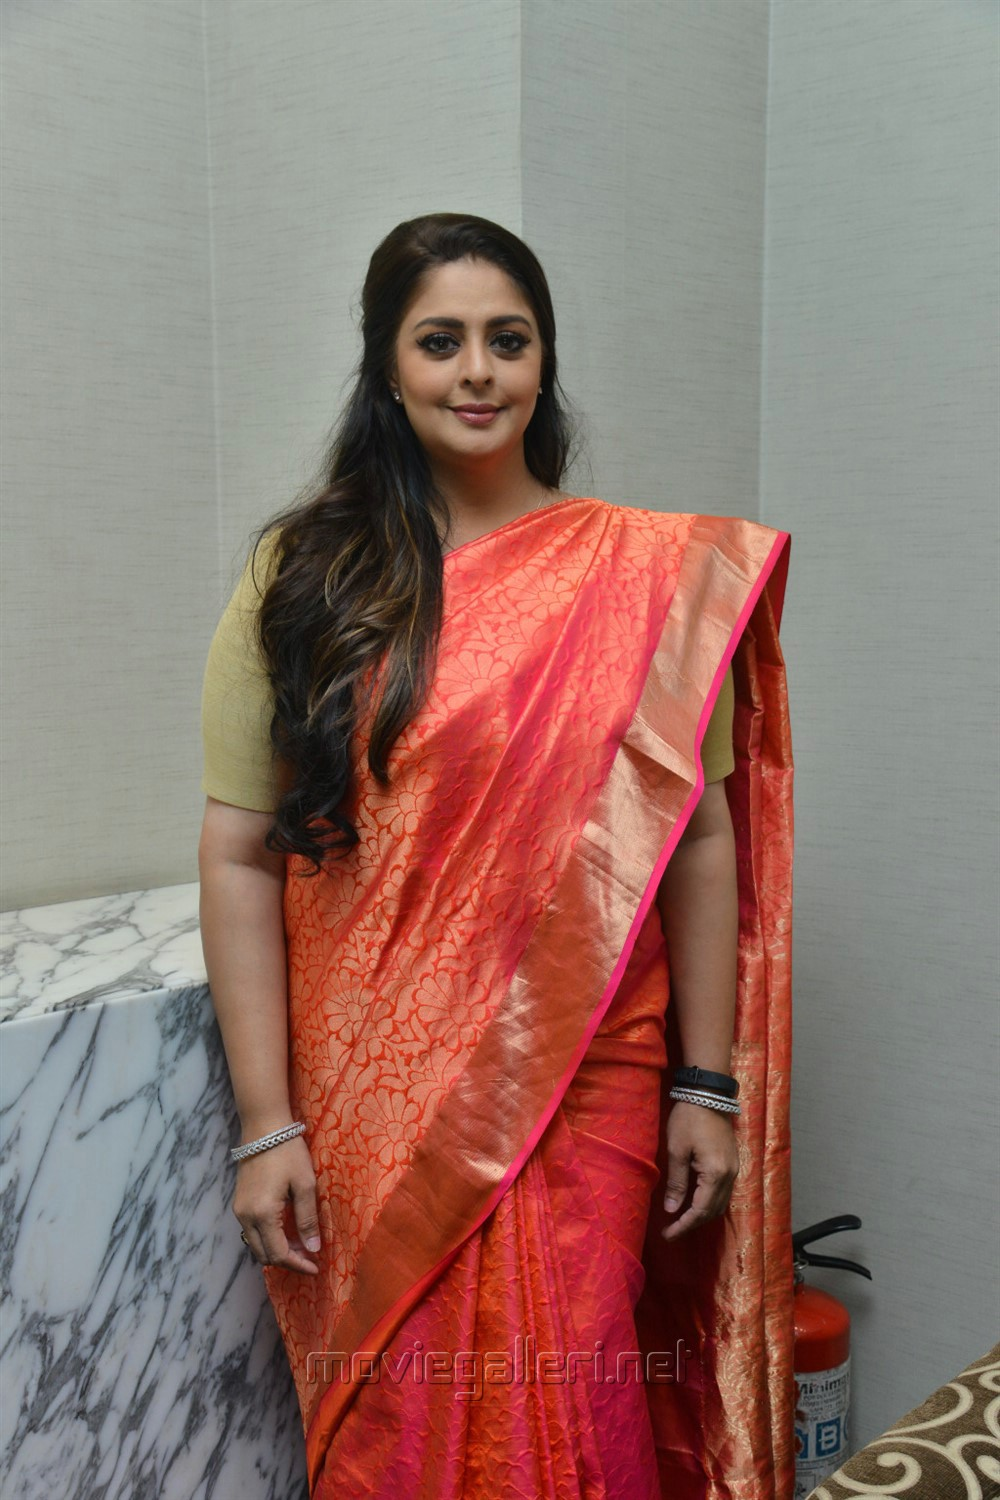 Nagma Nagma new pictures